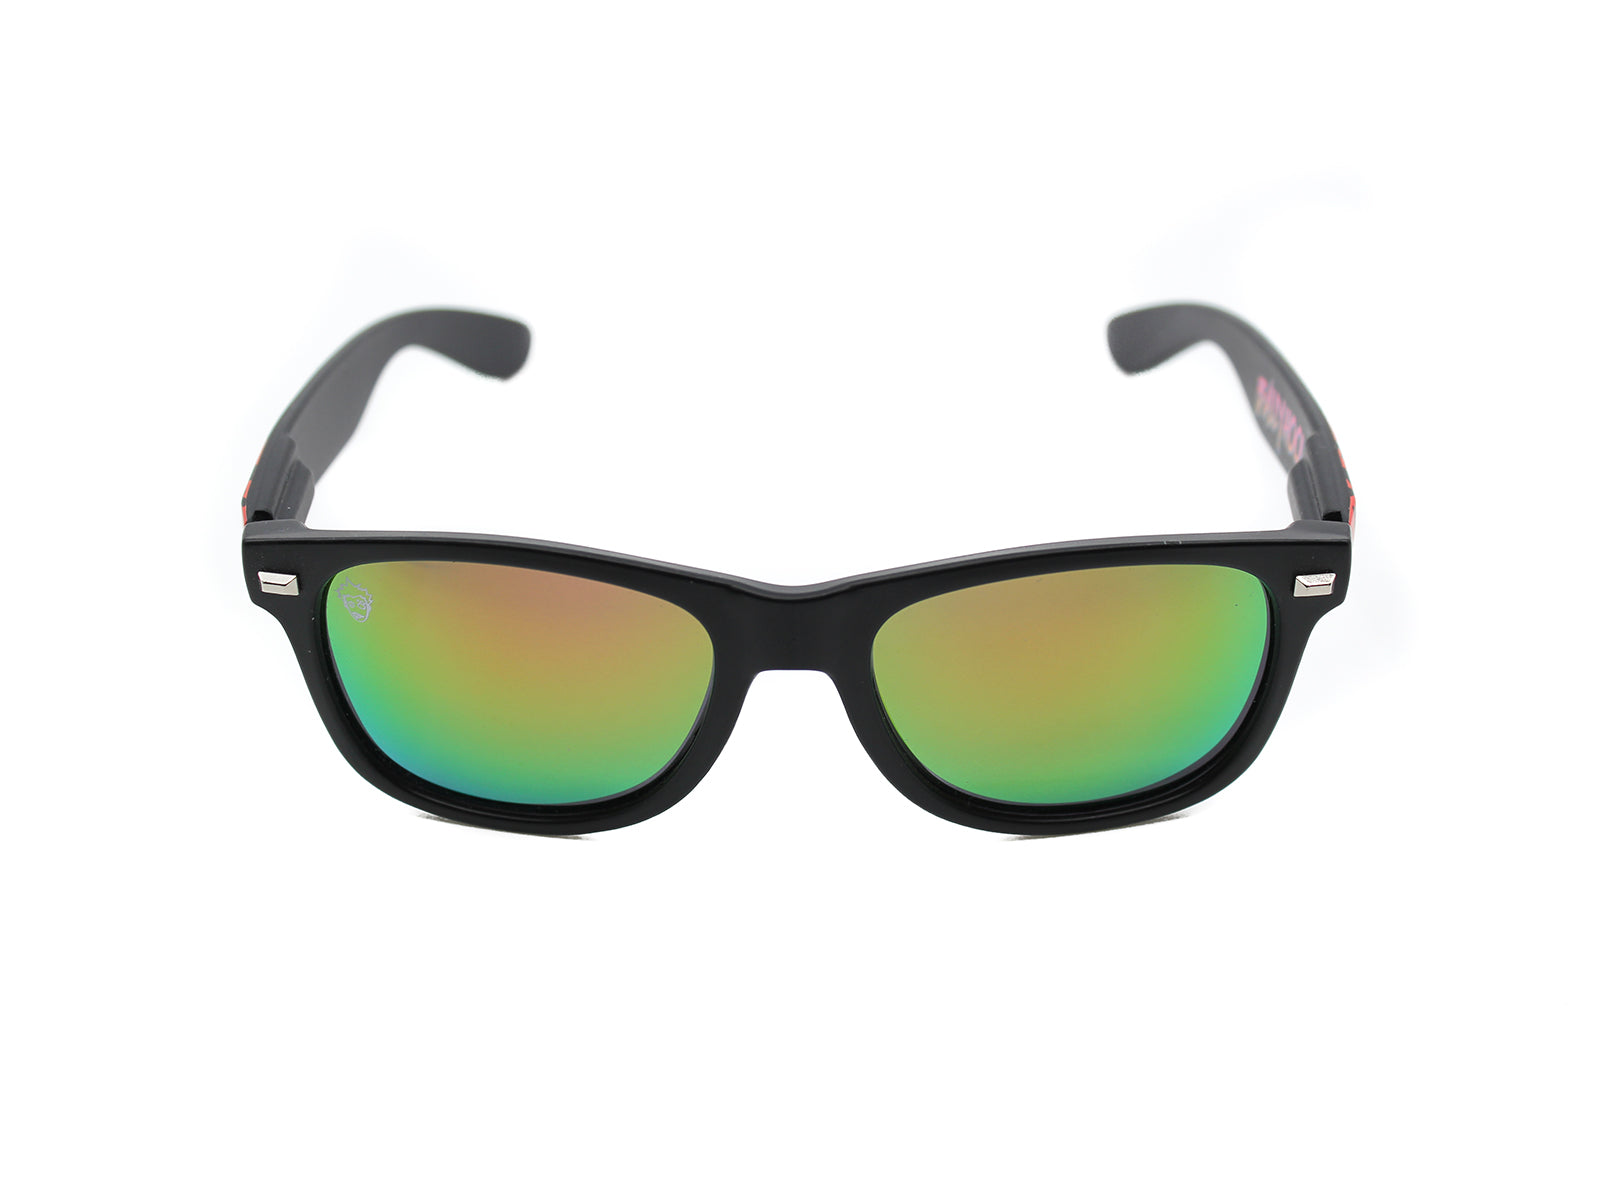 BALLYHOO! Limited Edition - Earls - Mirrored Orange Polarized